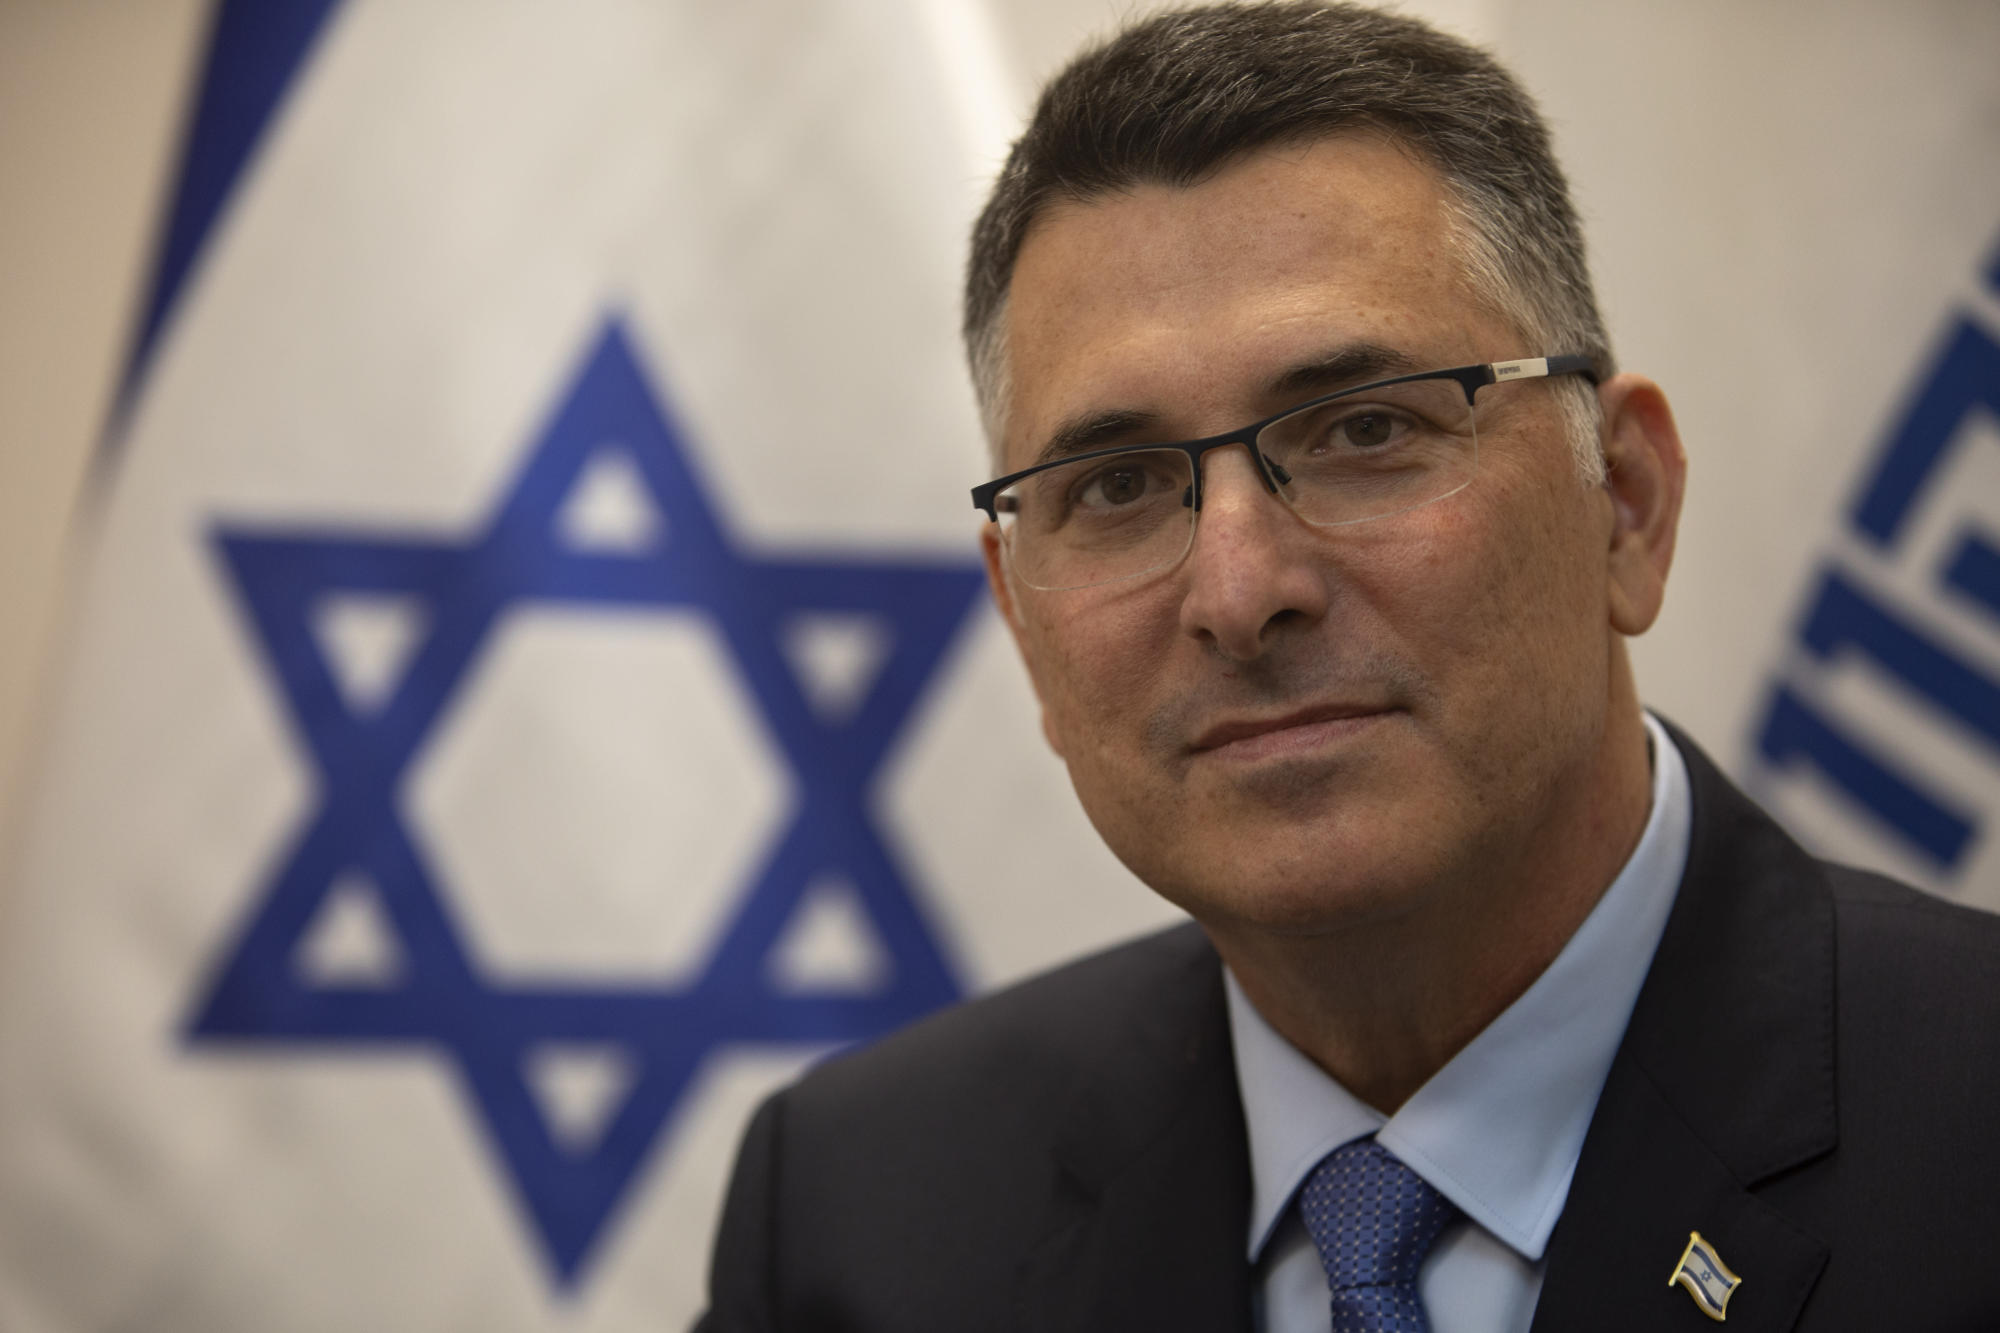 AP Interview: Netanyahu challenger pledges change with Biden